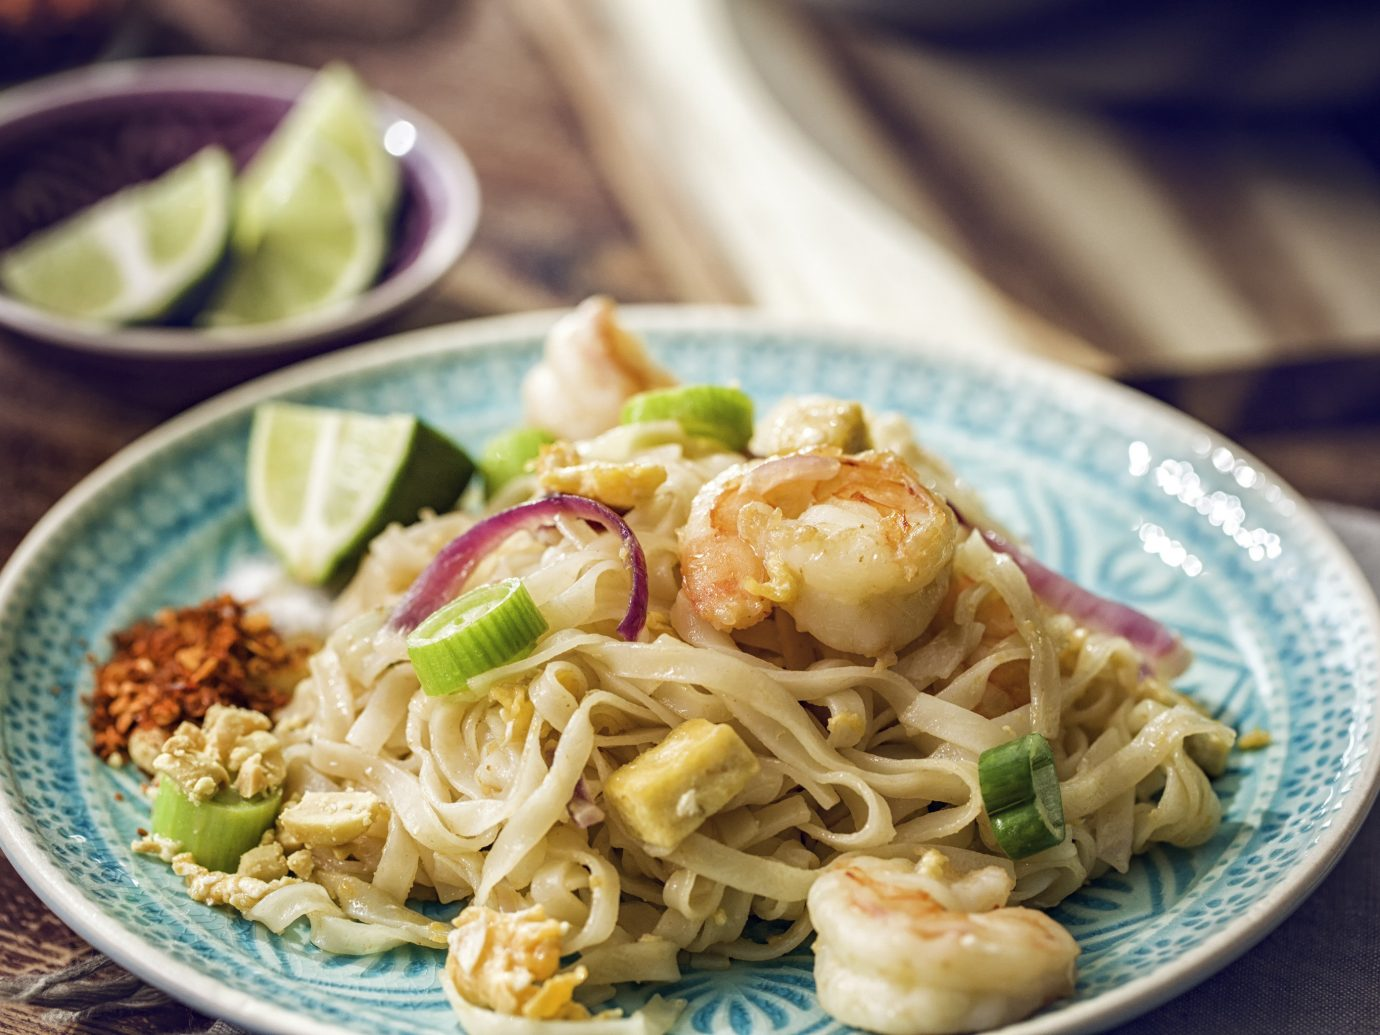 Jetsetter Guides plate food table dish cuisine noodle soup pad thai asian food noodle thai food chinese food chow mein southeast asian food Seafood laksa produce bakmi pasta